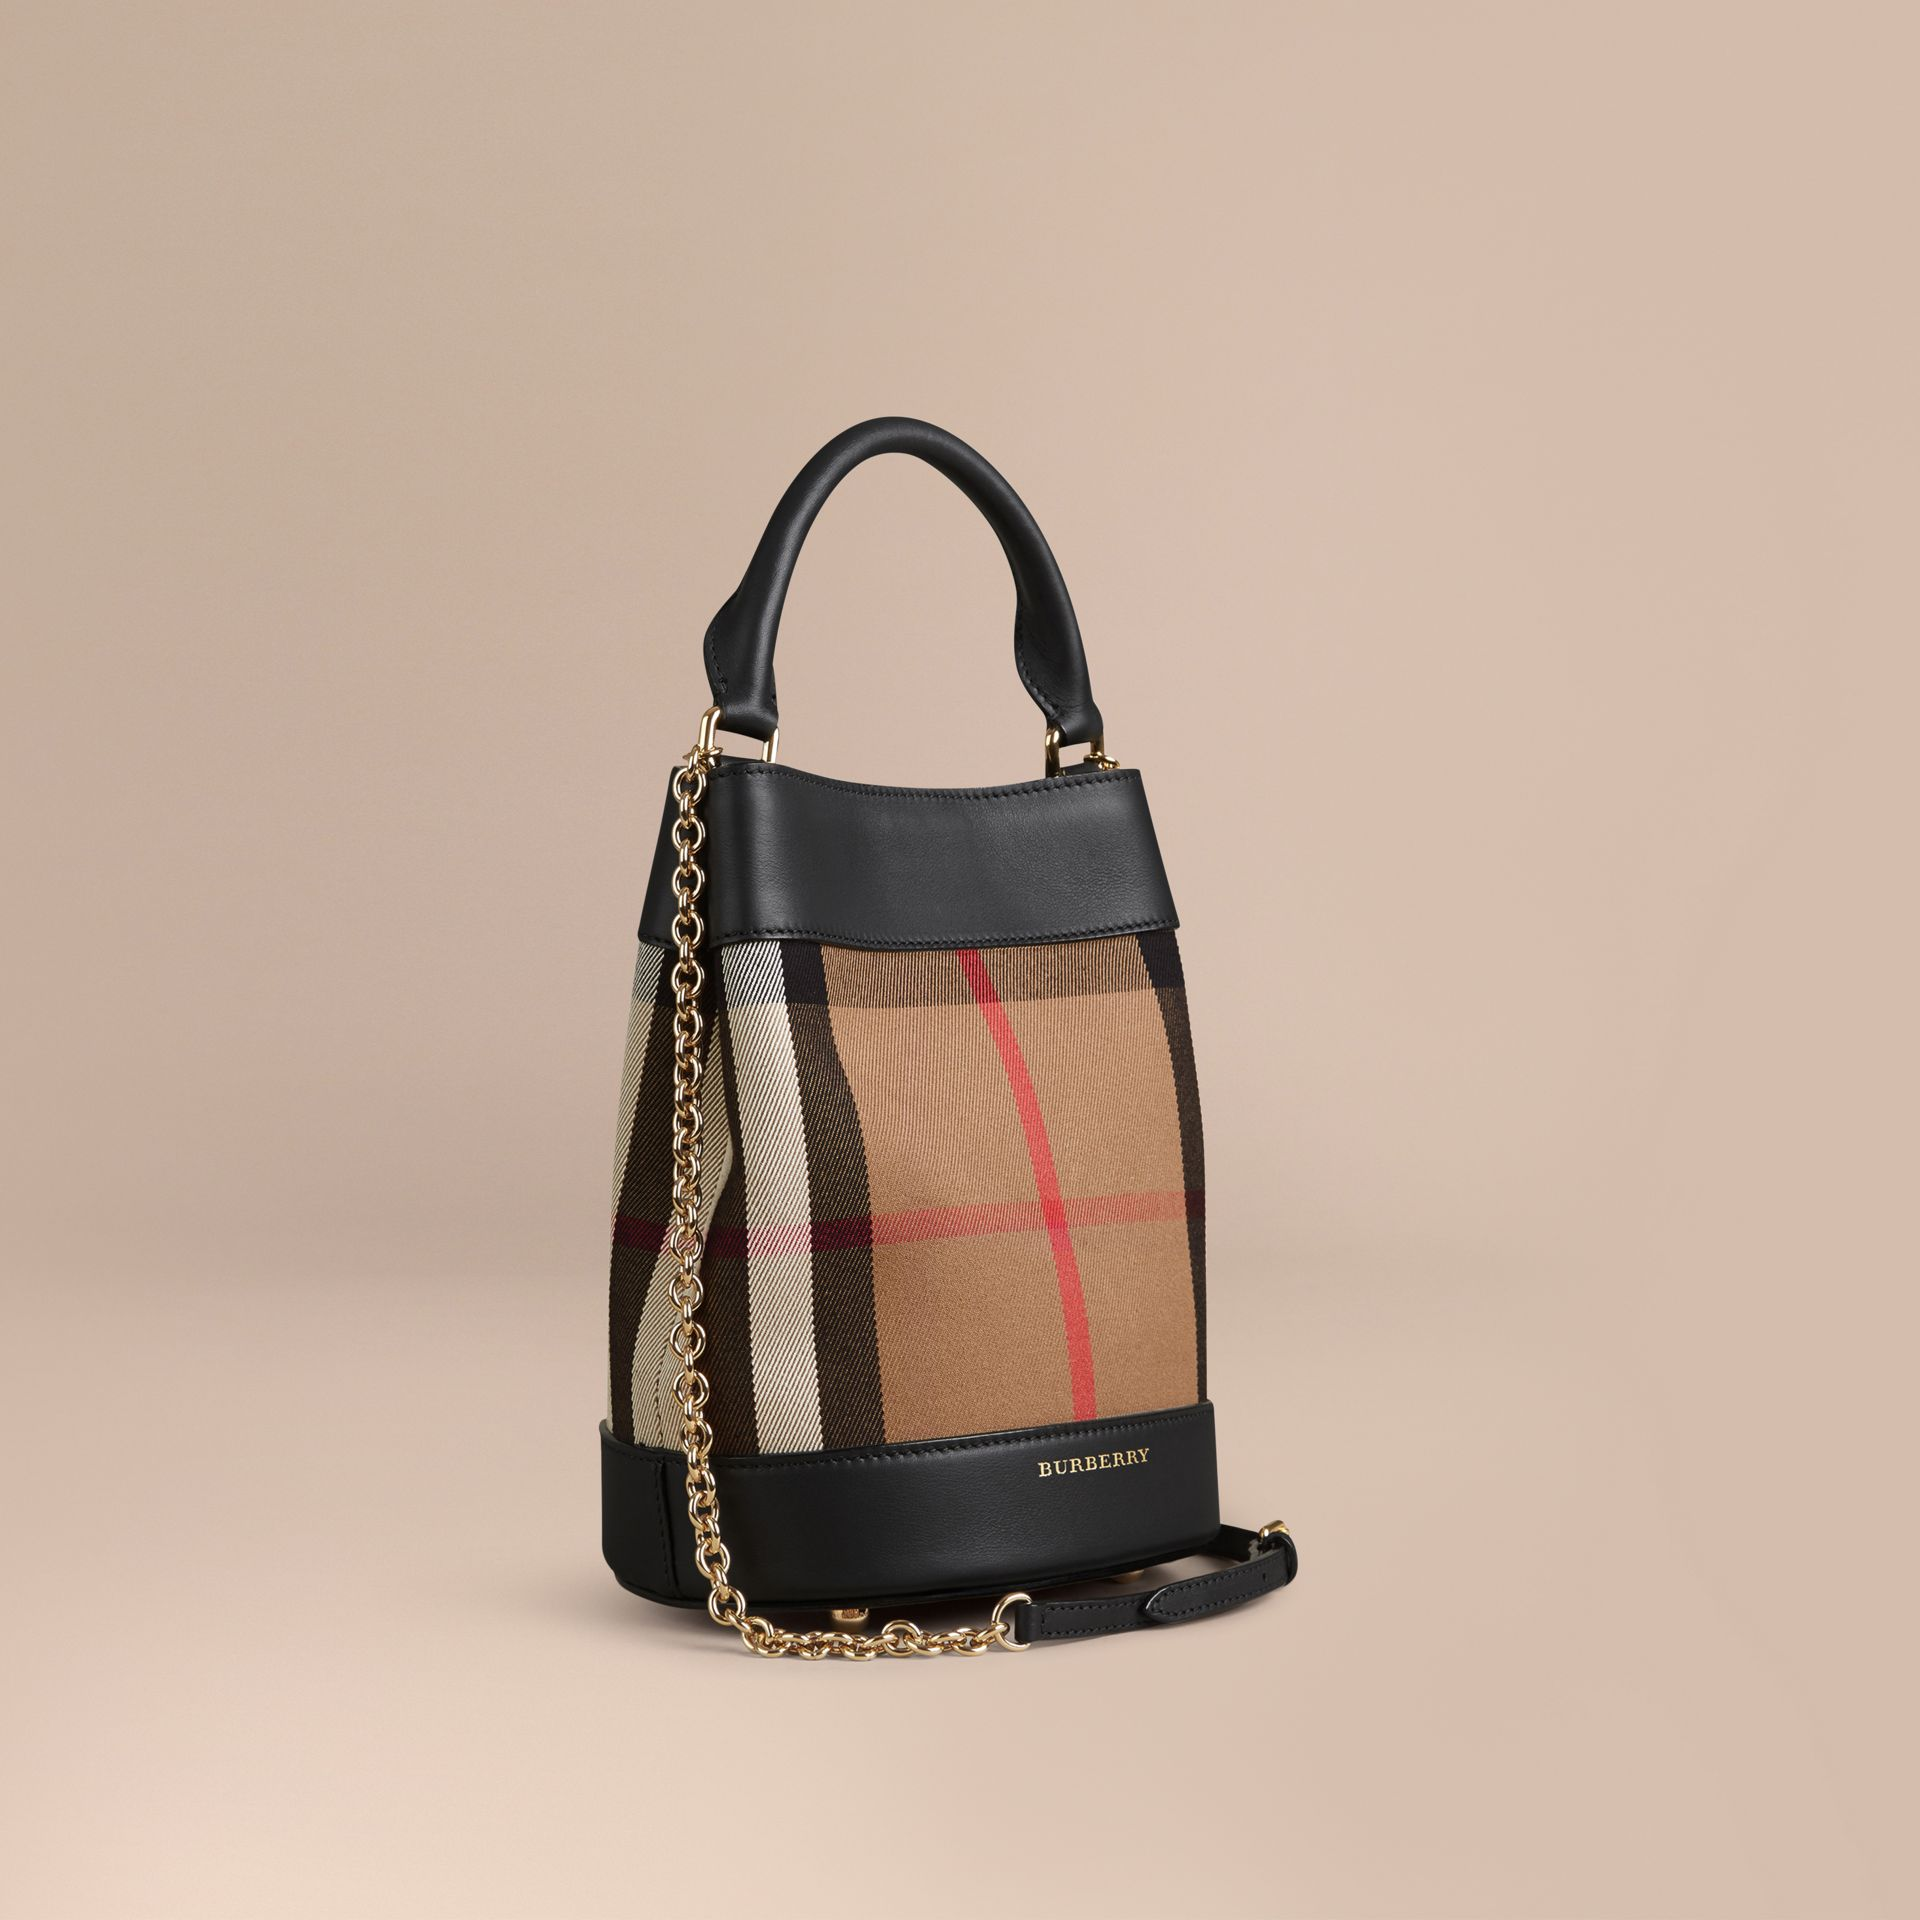 Noir Petit sac Burberry Bucket en coton House check et cuir - photo de la galerie 1